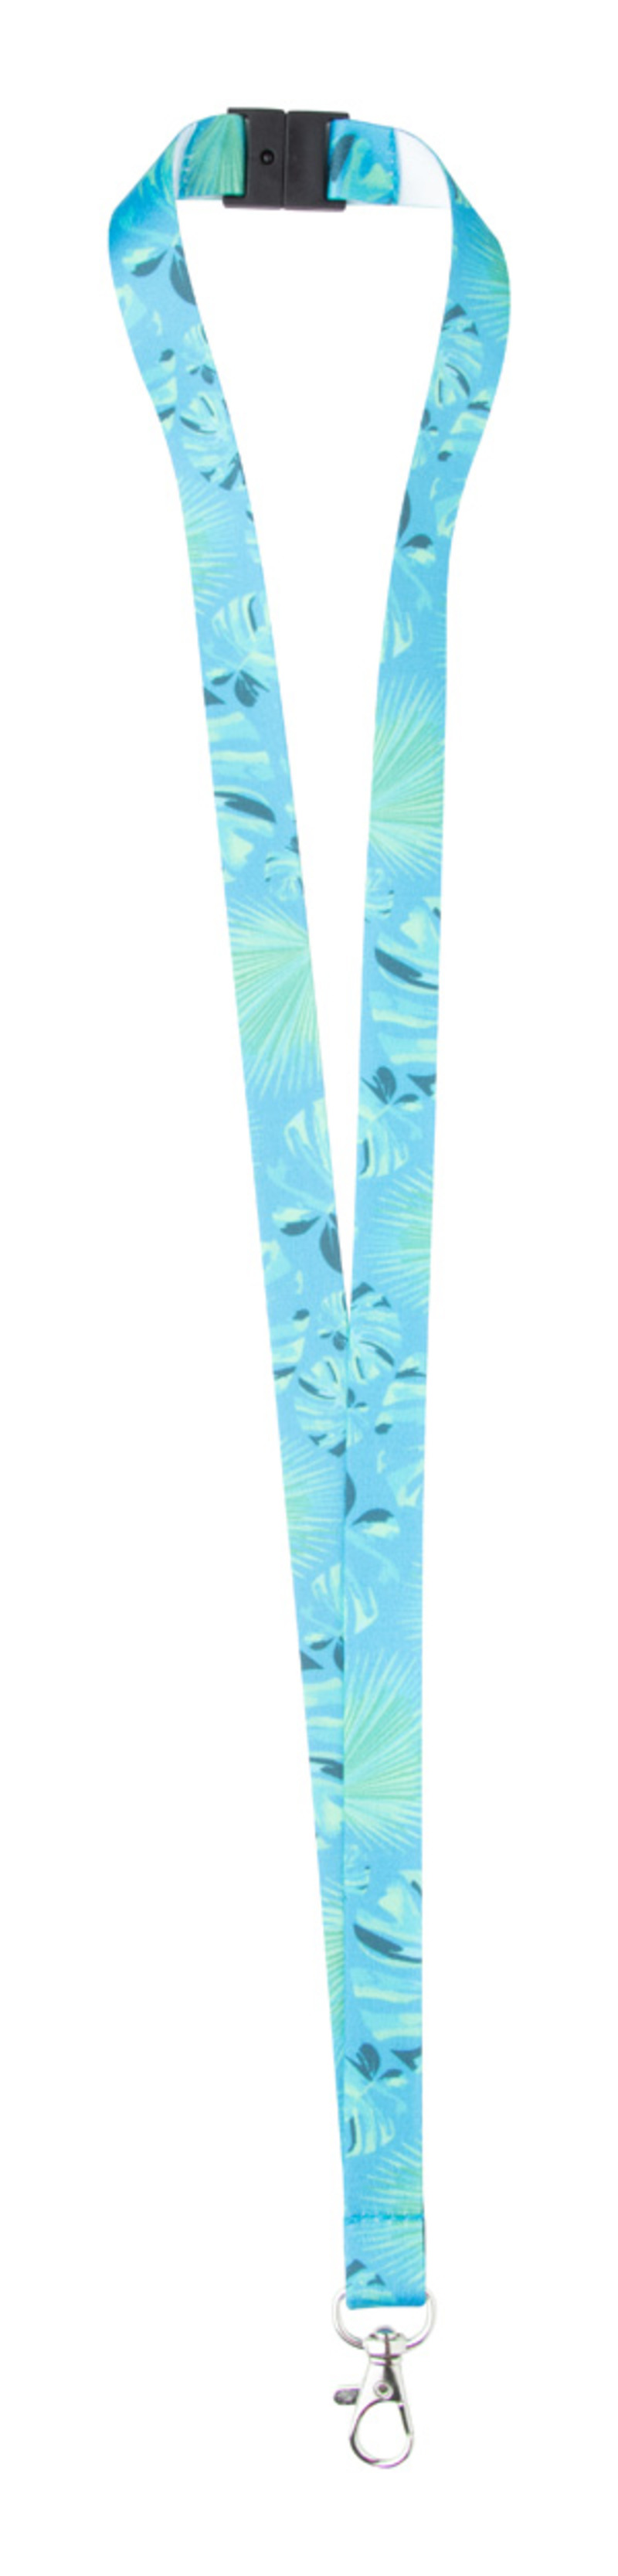 Subyard 15 Zero Safe custom sublimation lanyard